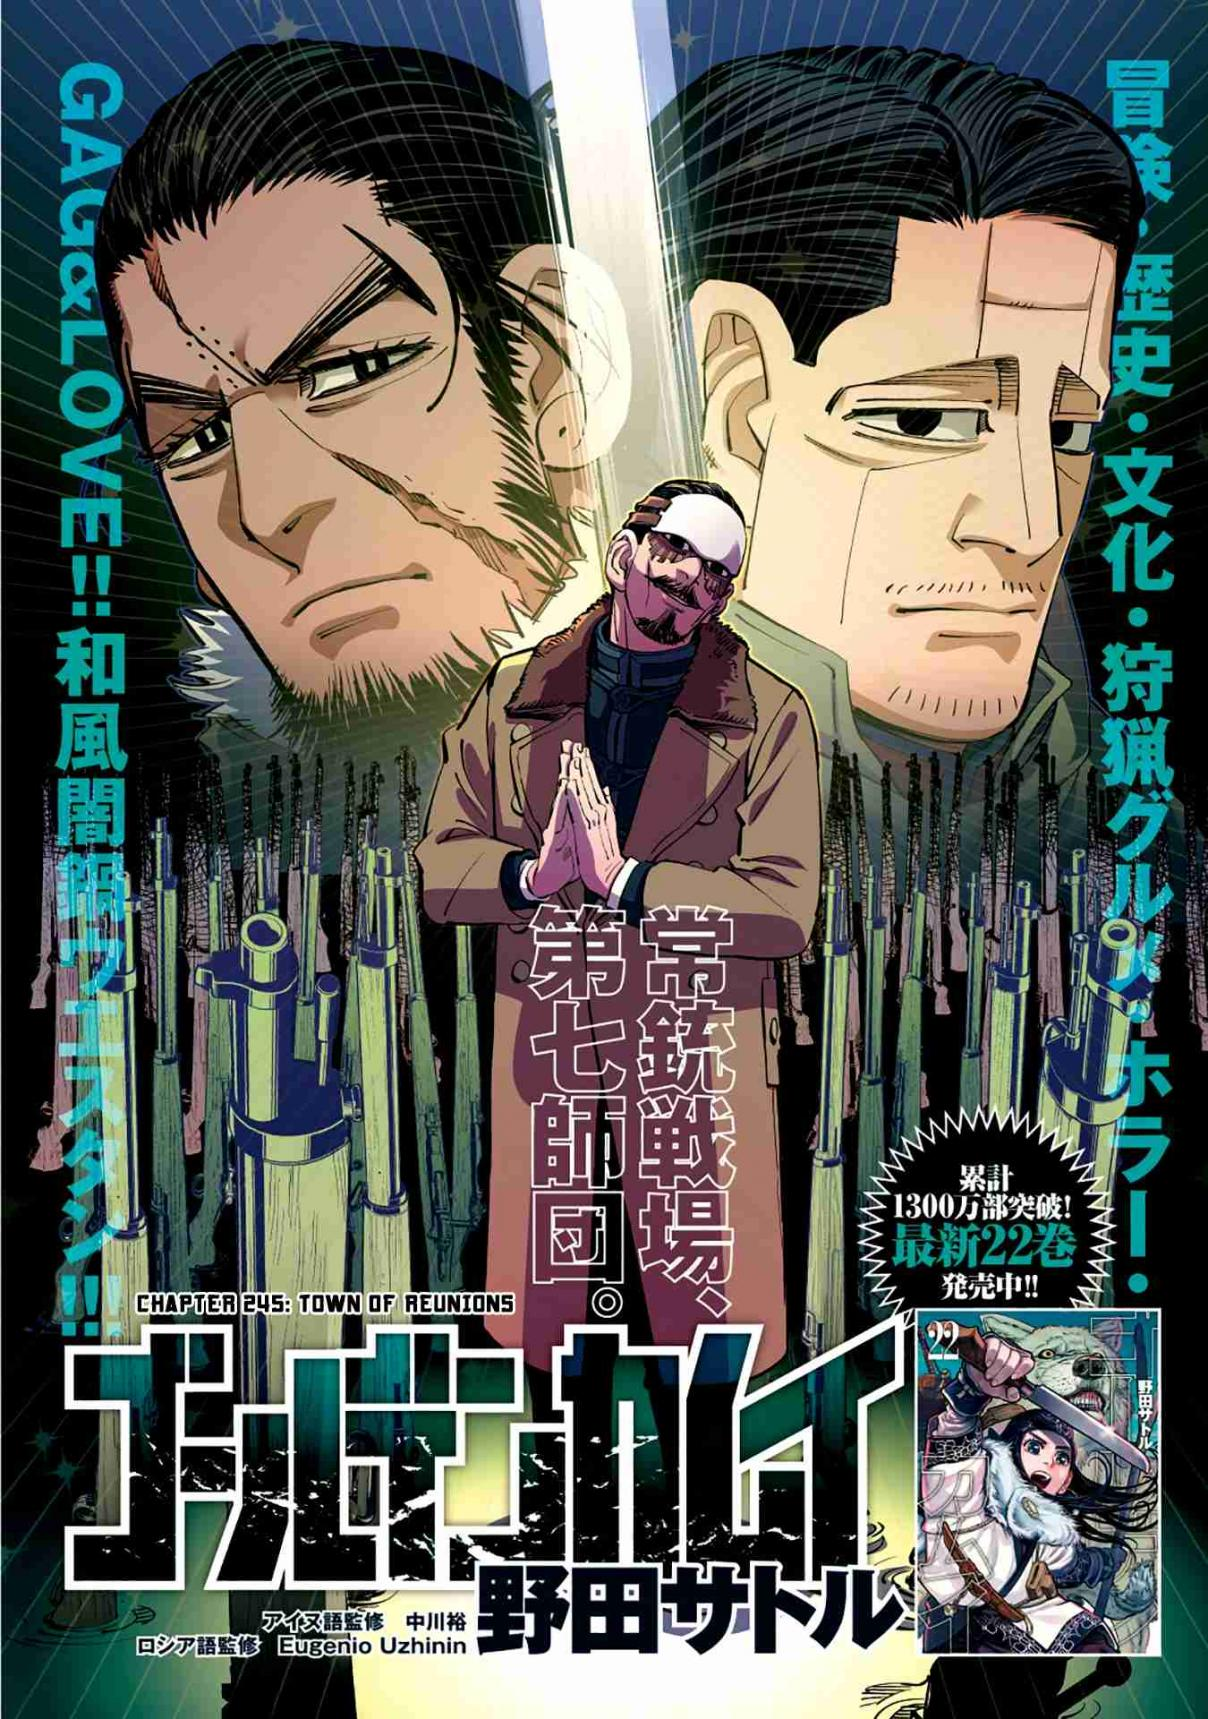 Golden Kamuy Ch. 245 Town of Reunions